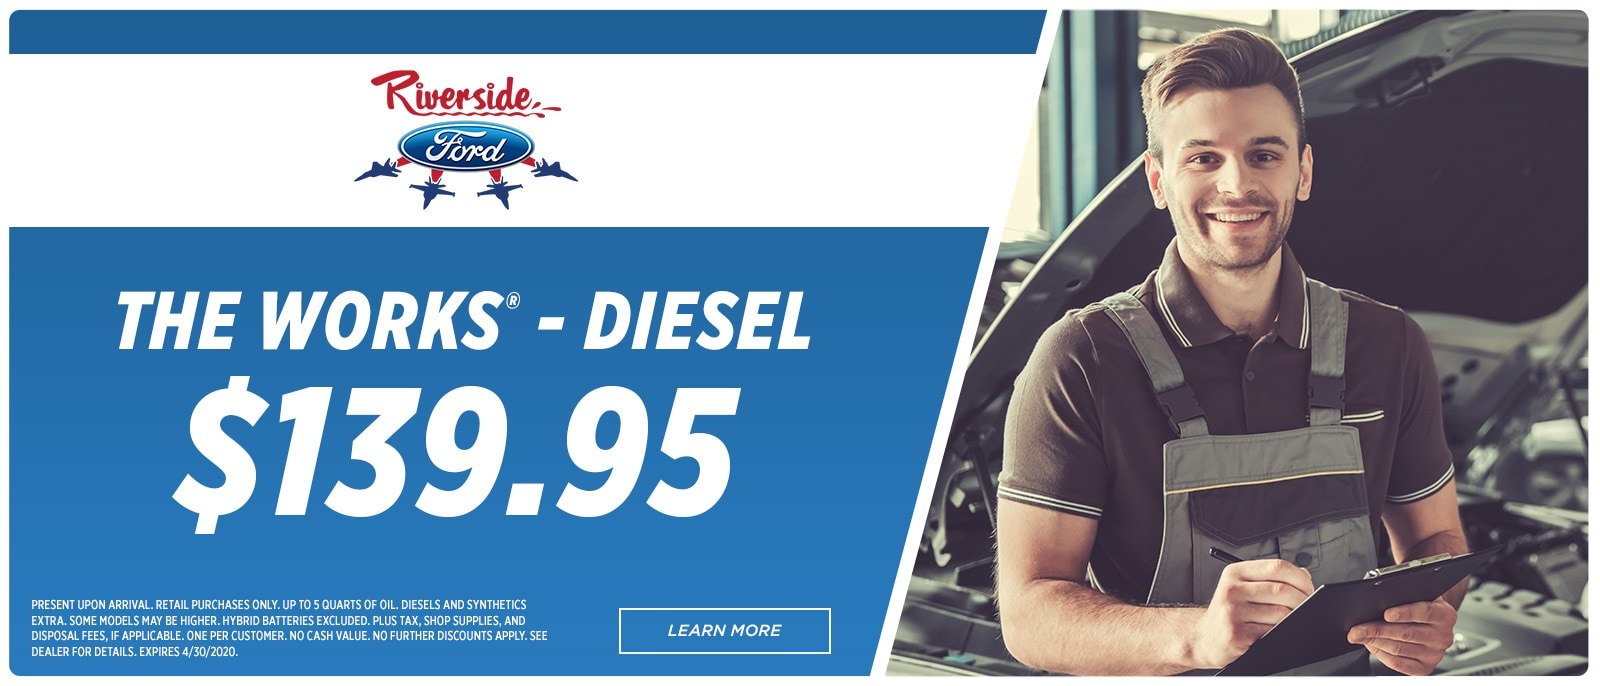 Riverside Ford Service -1600x686 -The Works Diesel | Havelock, NC